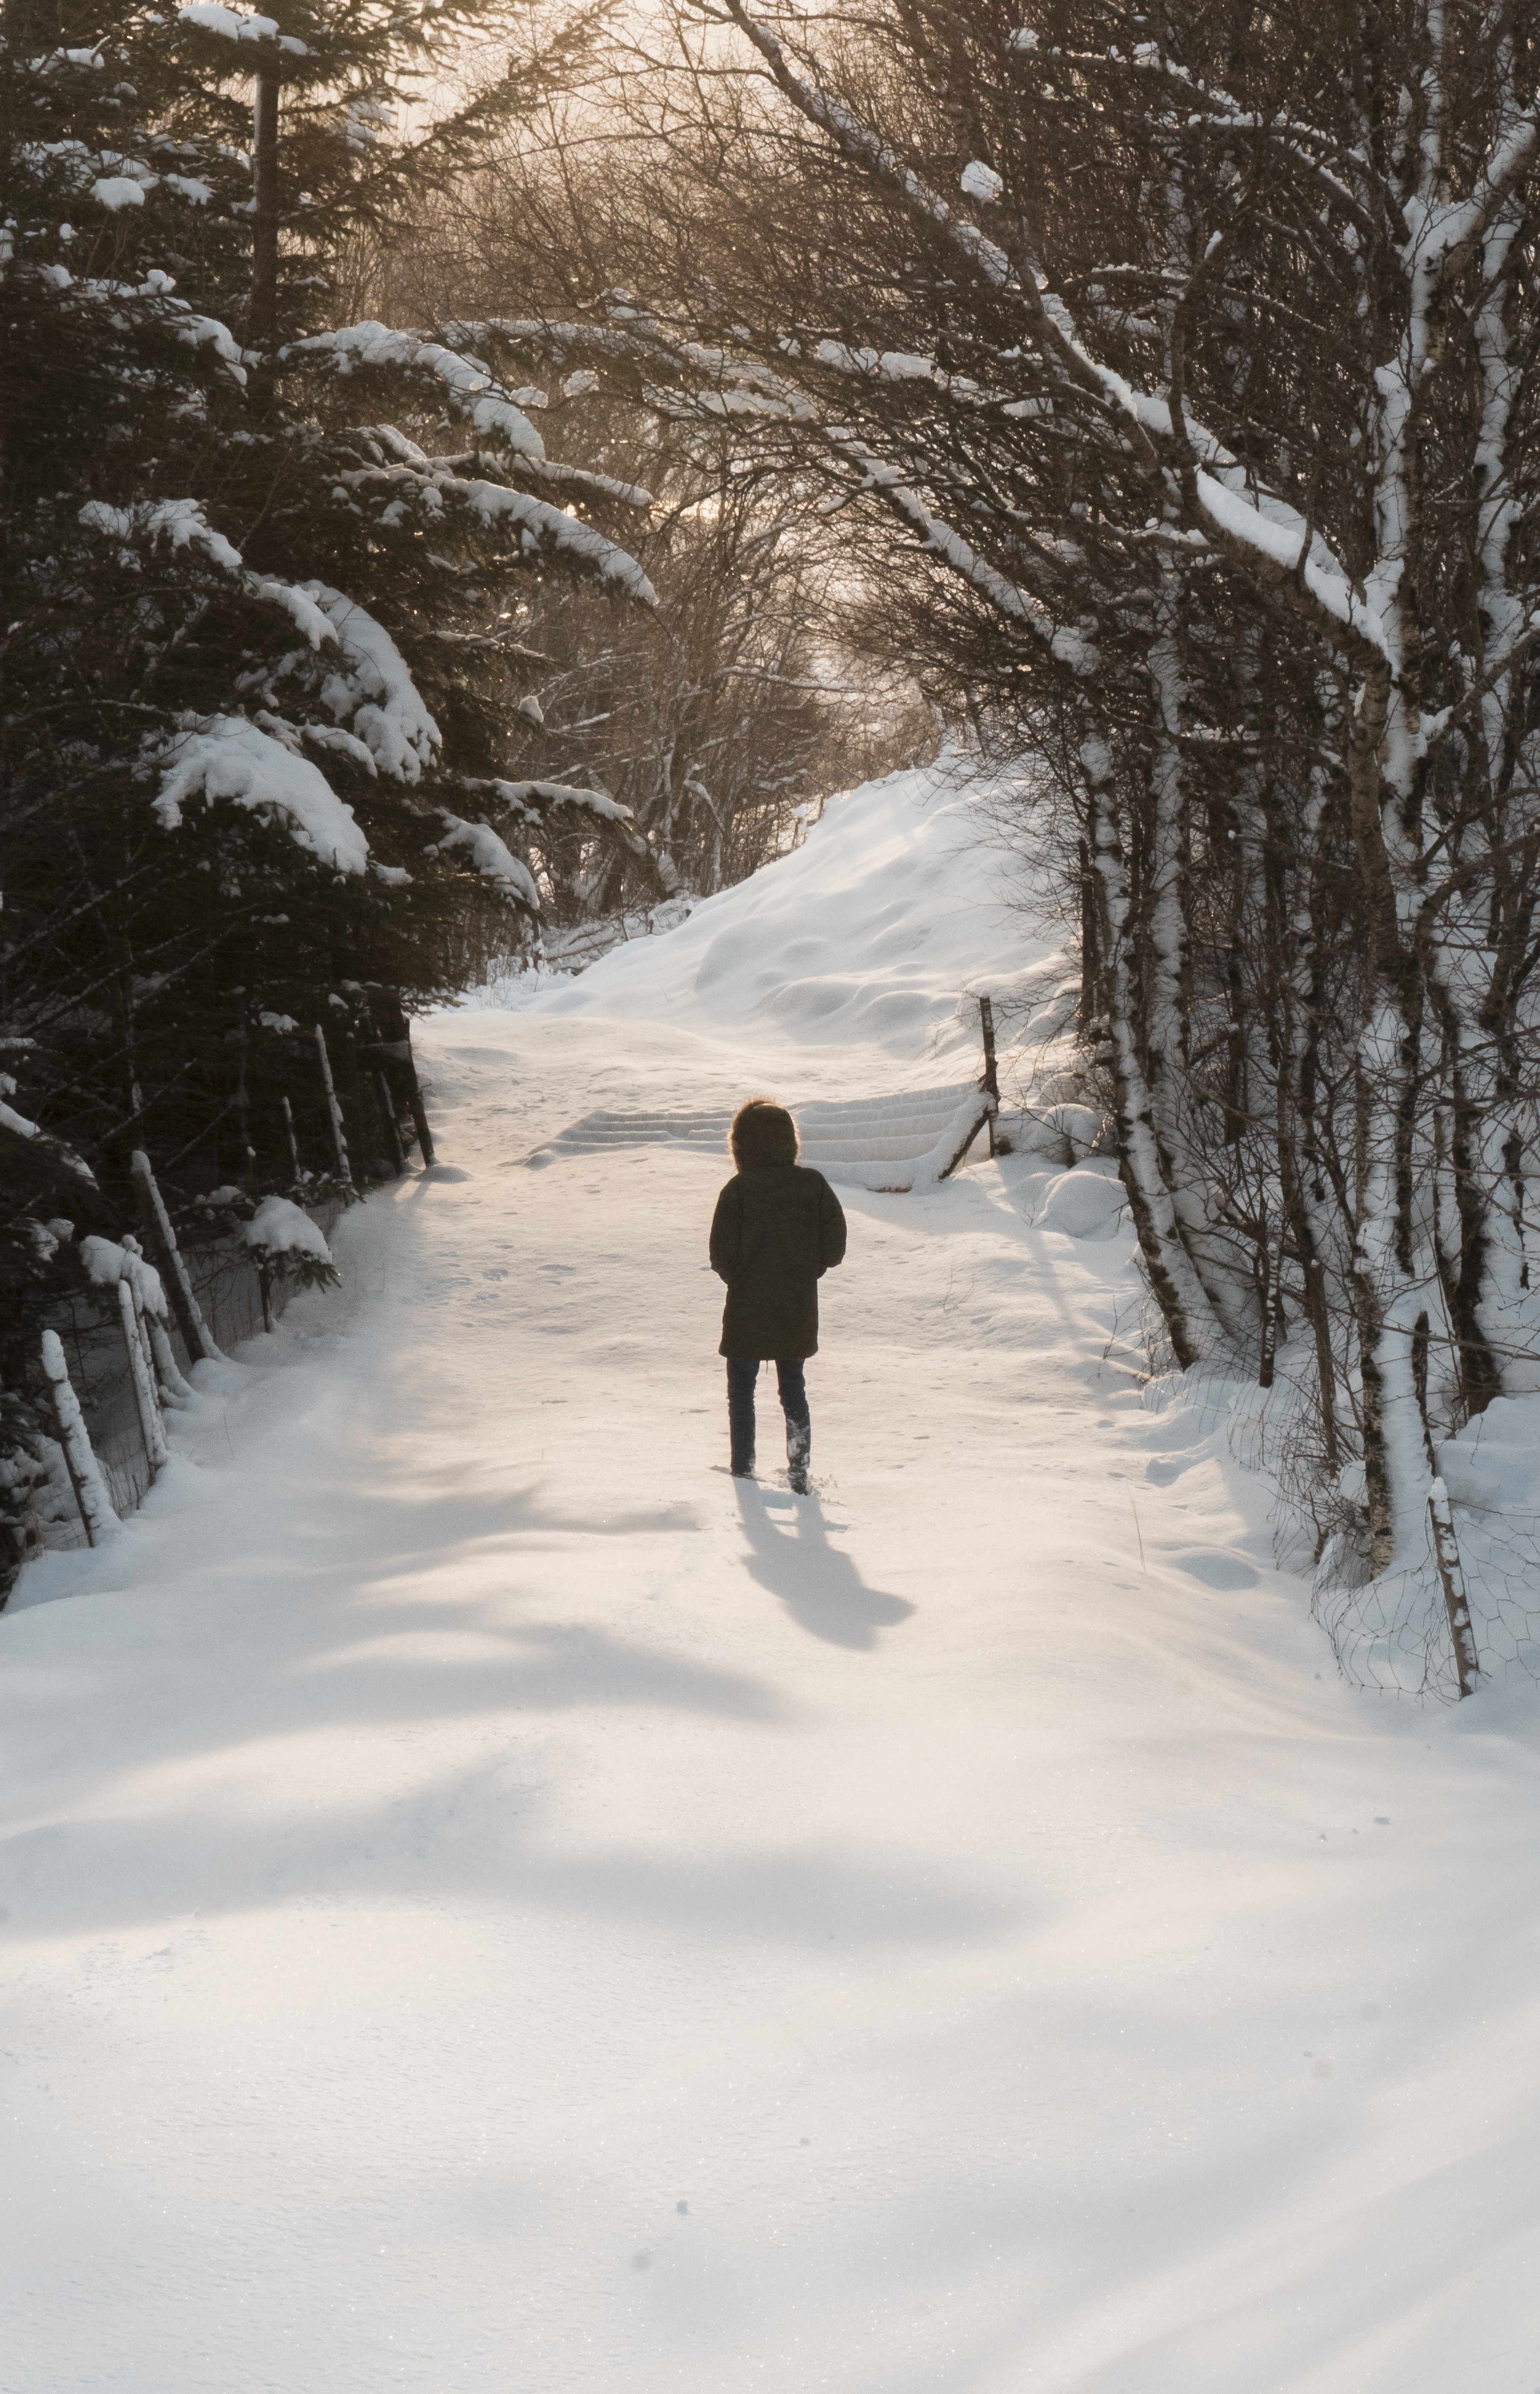 person waling on snow field surrounded by trees